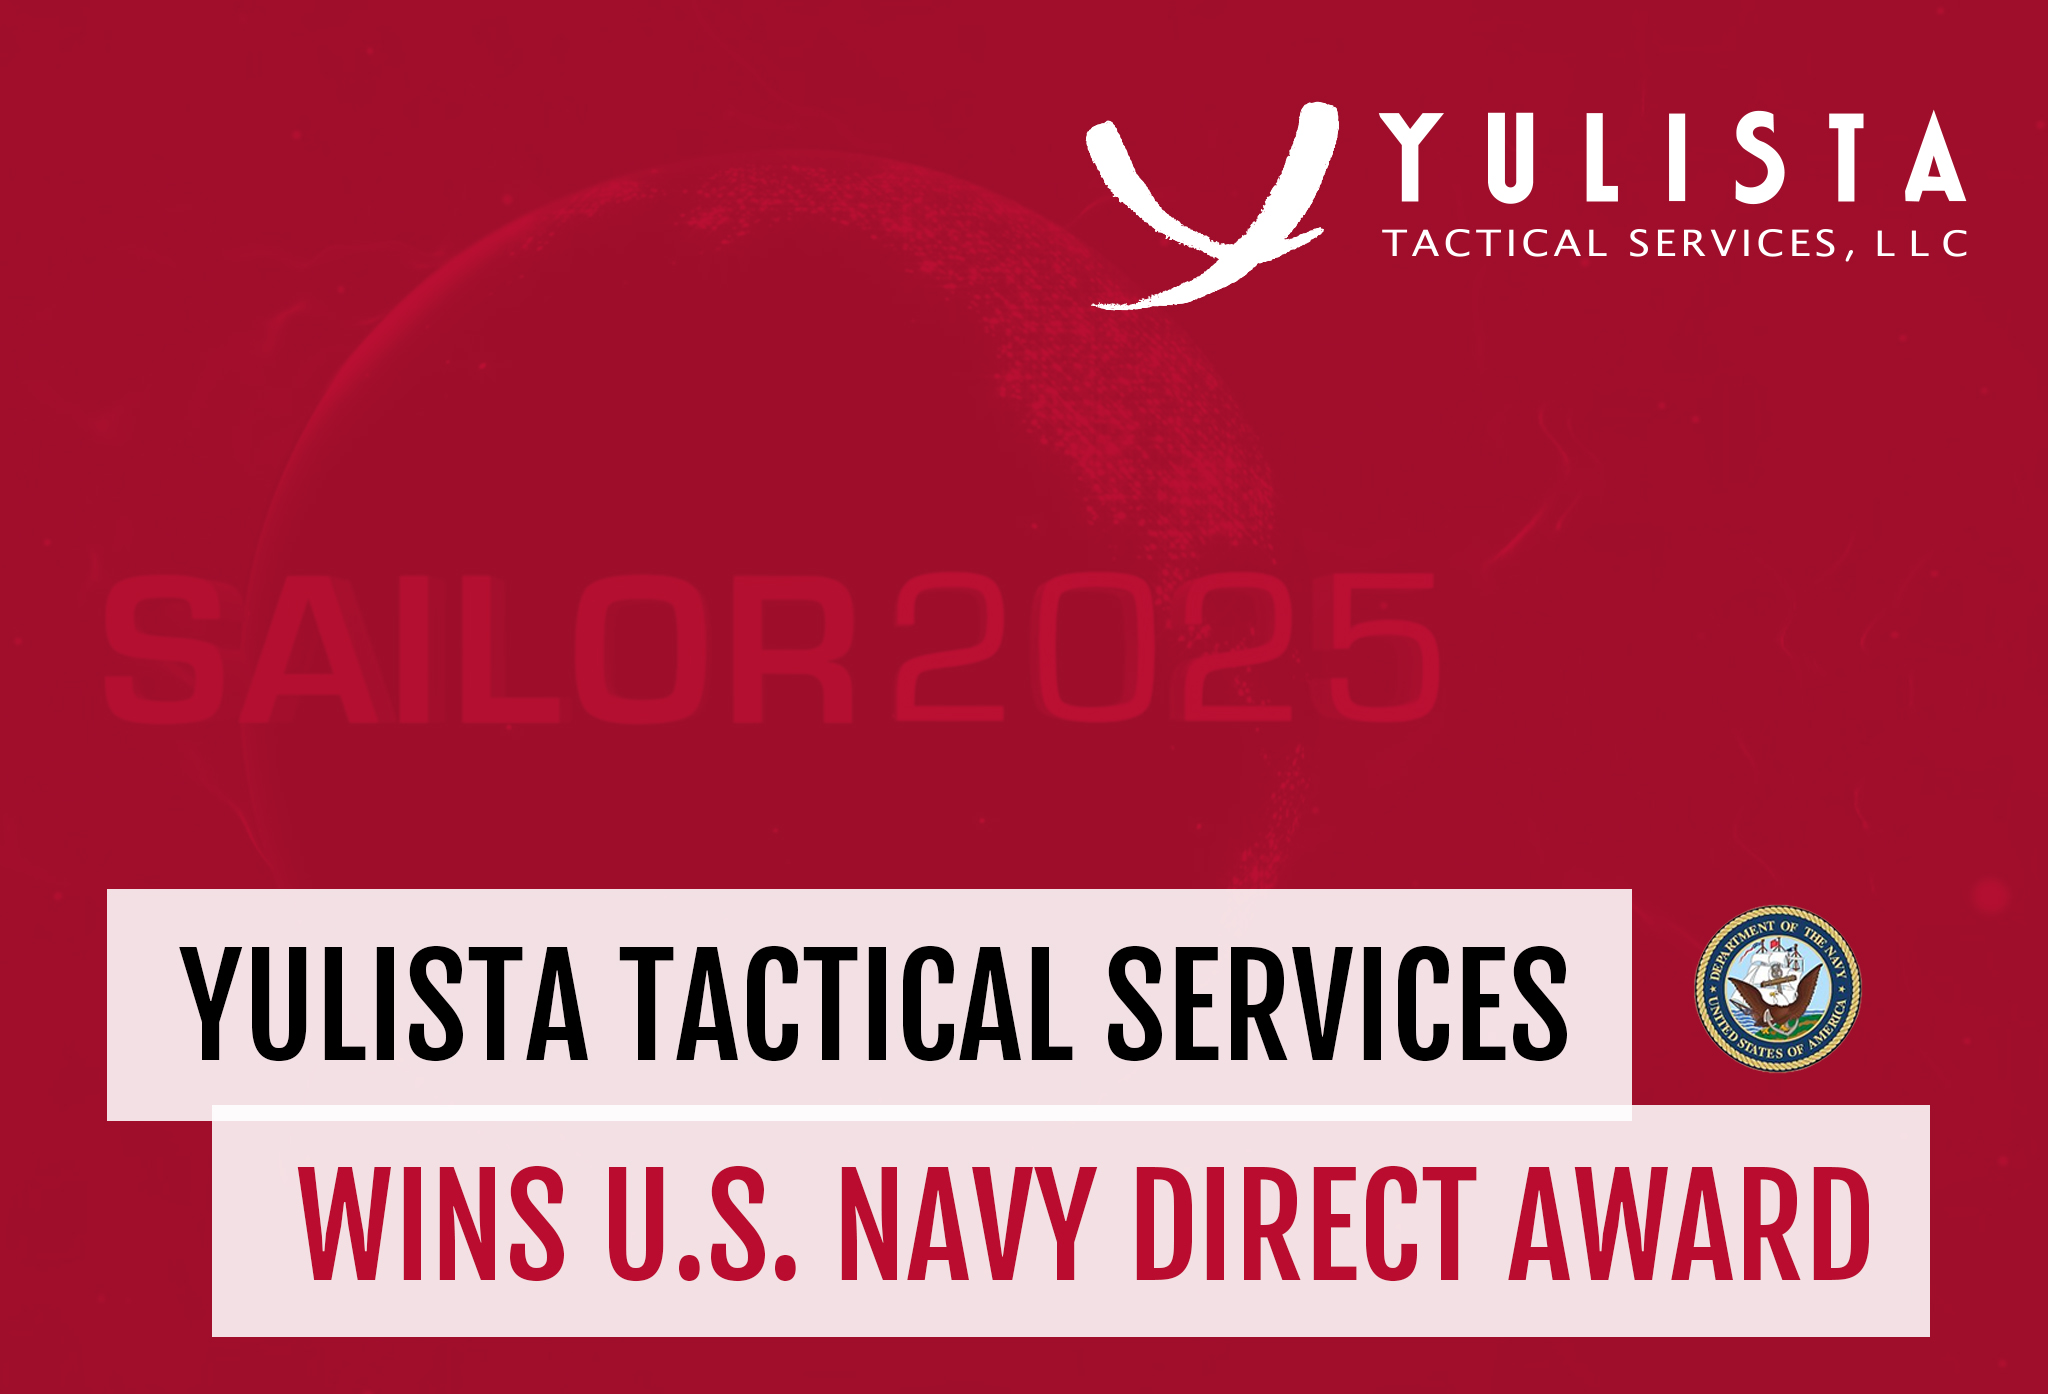 Yulista-Tactical-Services-Navy-Direct-Award-Win